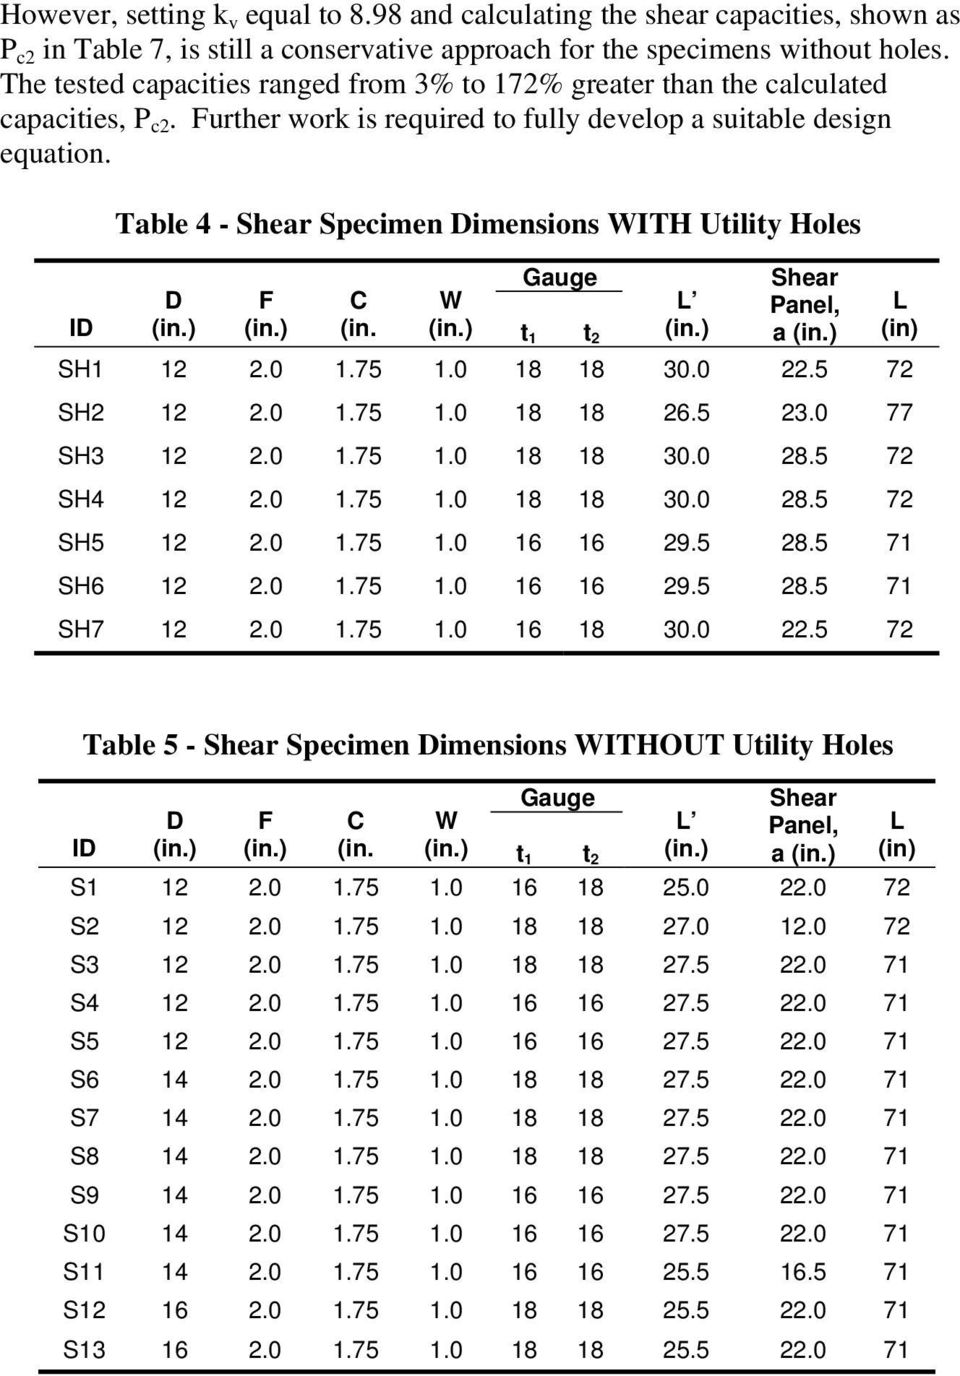 Table 4 - Shear Specimen Dimensions WITH Utility Holes Gauge Shear ID D (in.) F (in.) C (in. W (in.) t 1 t 2 L (in.) Panel, a (in.) L (in) SH1 12 2.0 1.75 1.0 18 18 30.0 22.5 72 SH2 12 2.0 1.75 1.0 18 18 26.